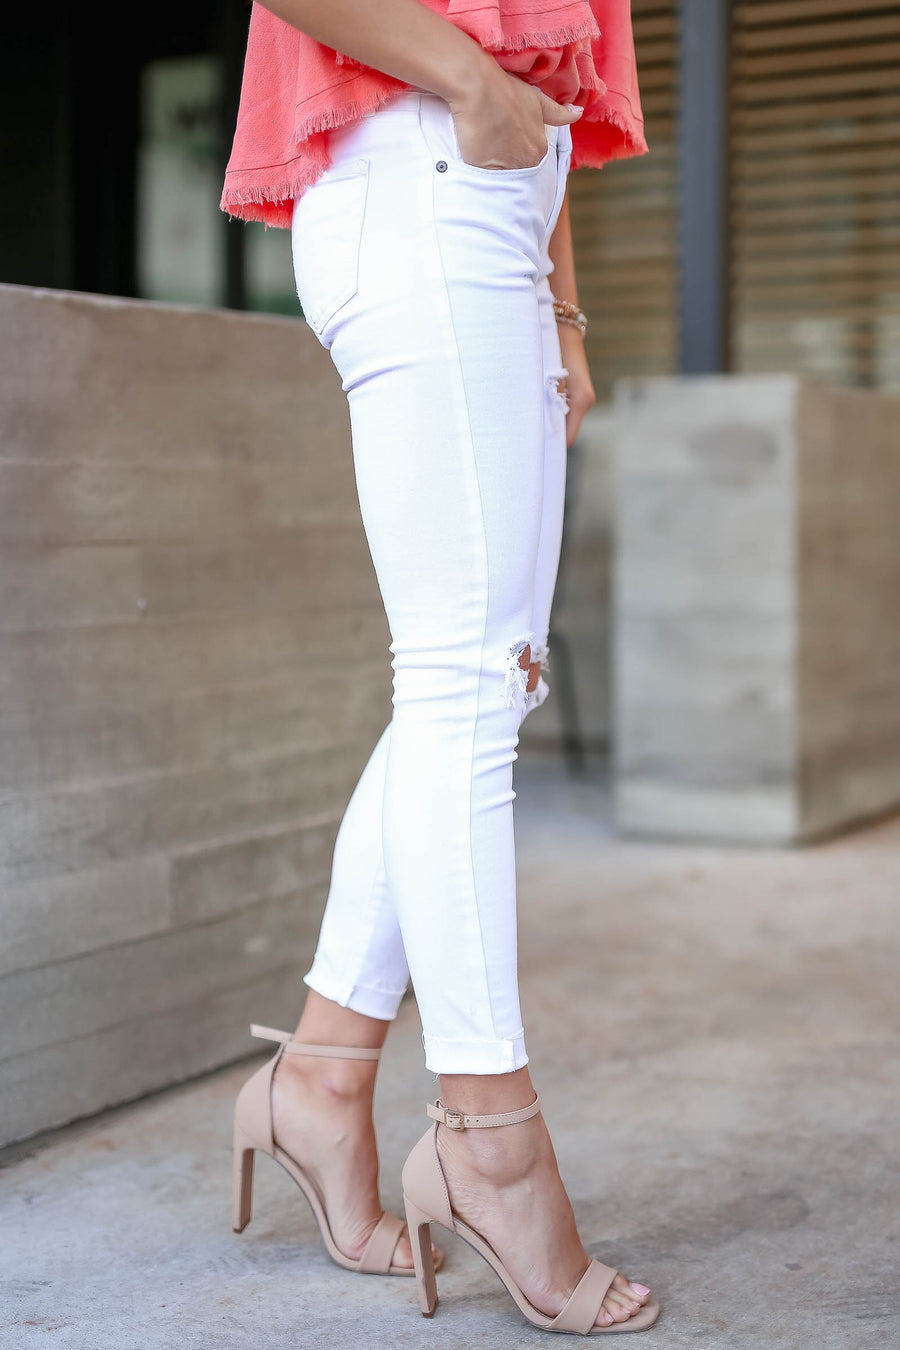 EUNINA Addison Distressed Skinny Jeans - White closet candy women's trendy ripped raw hem jeans front